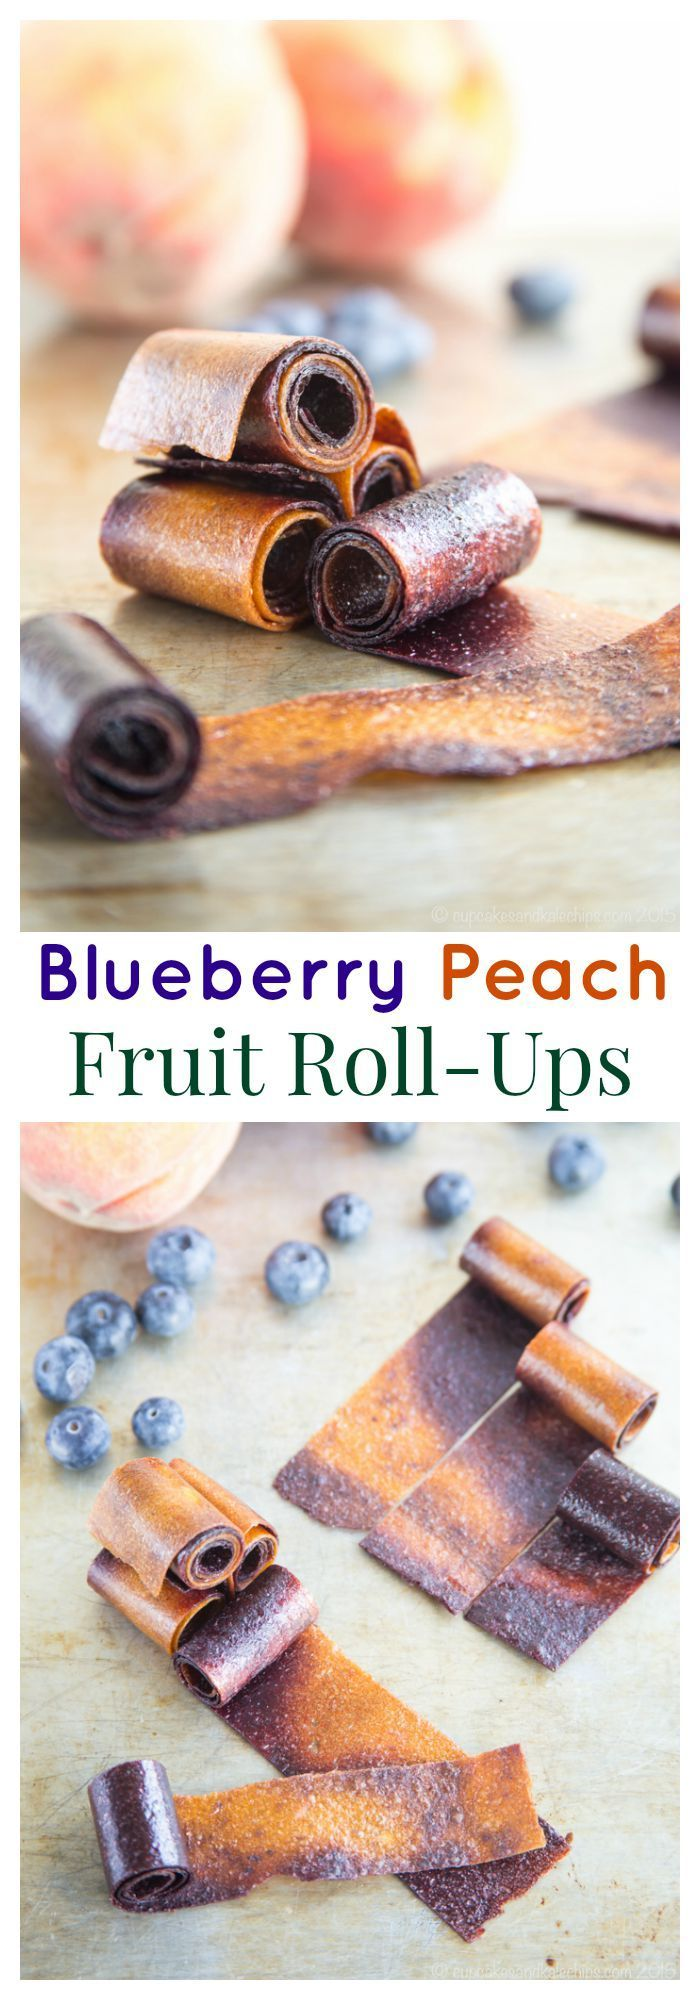 Blueberry Peach Fruit Roll-Ups. #summer #snacks #camping